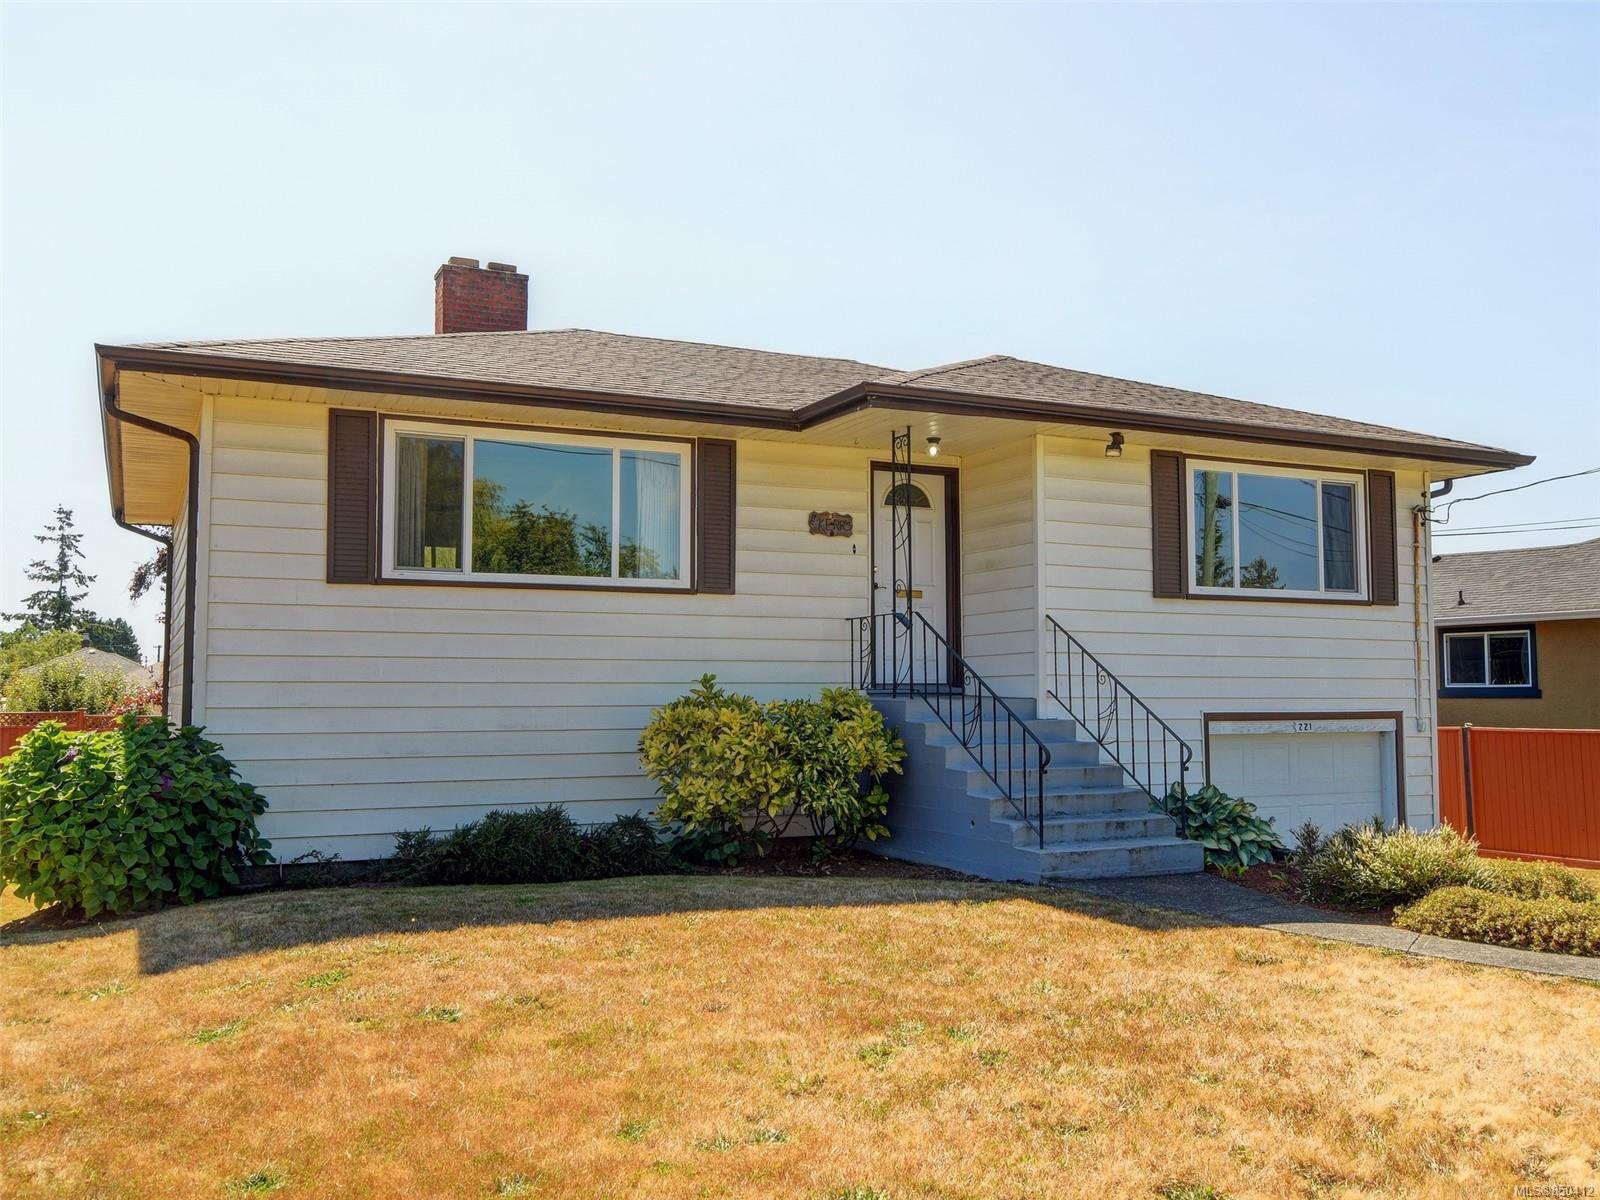 Main Photo: 221 kamloops Ave in : SW Tillicum House for sale (Saanich West)  : MLS®# 850412